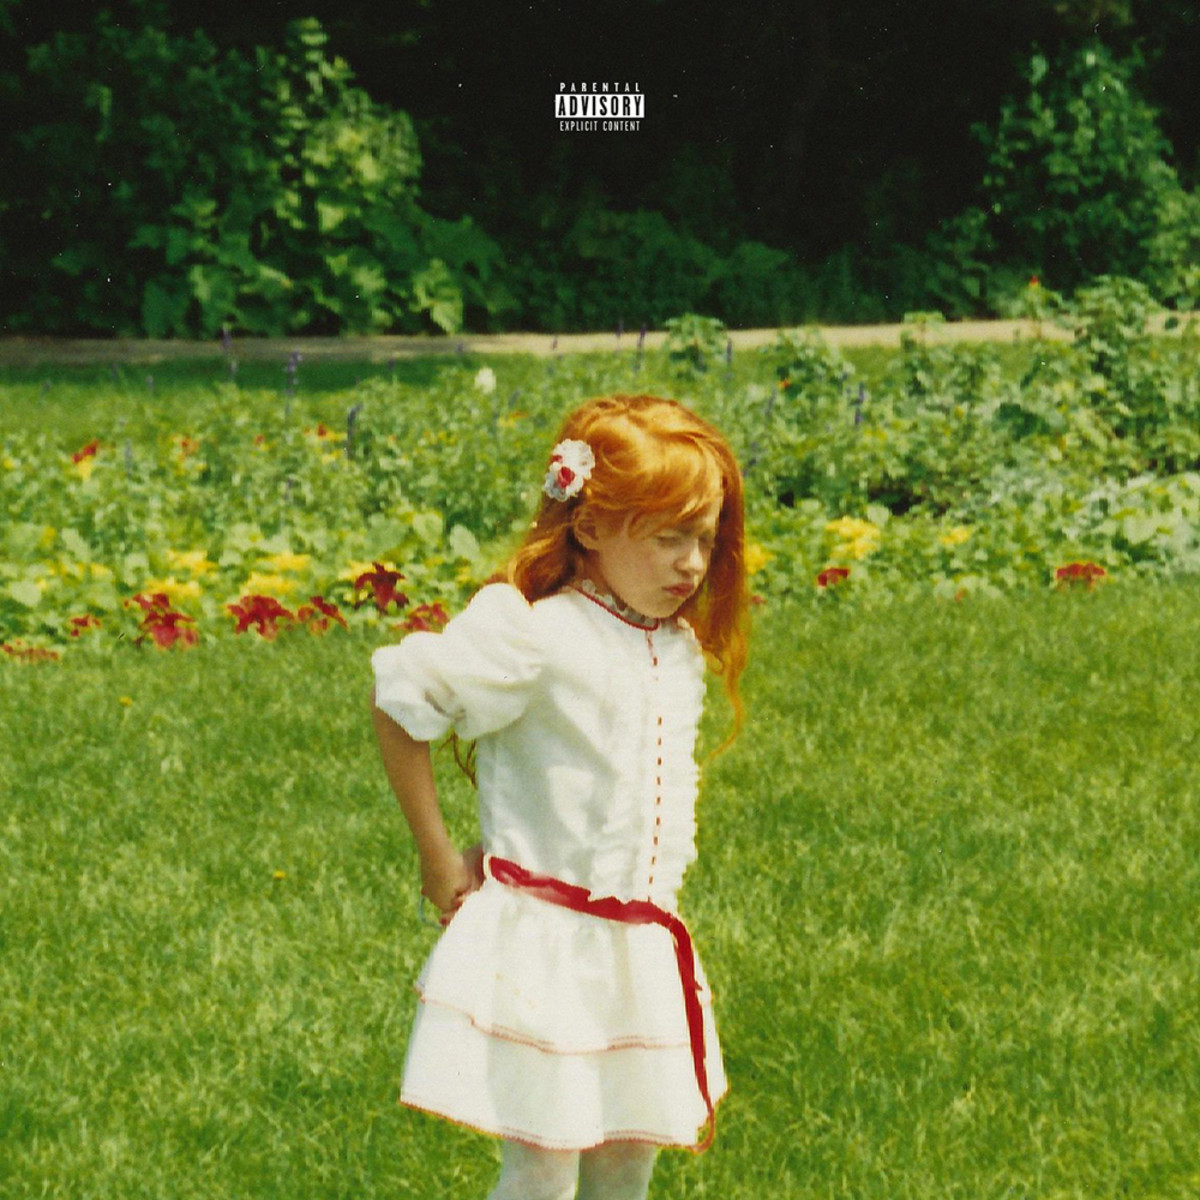 rejjie-snow-dear-annie-album-art